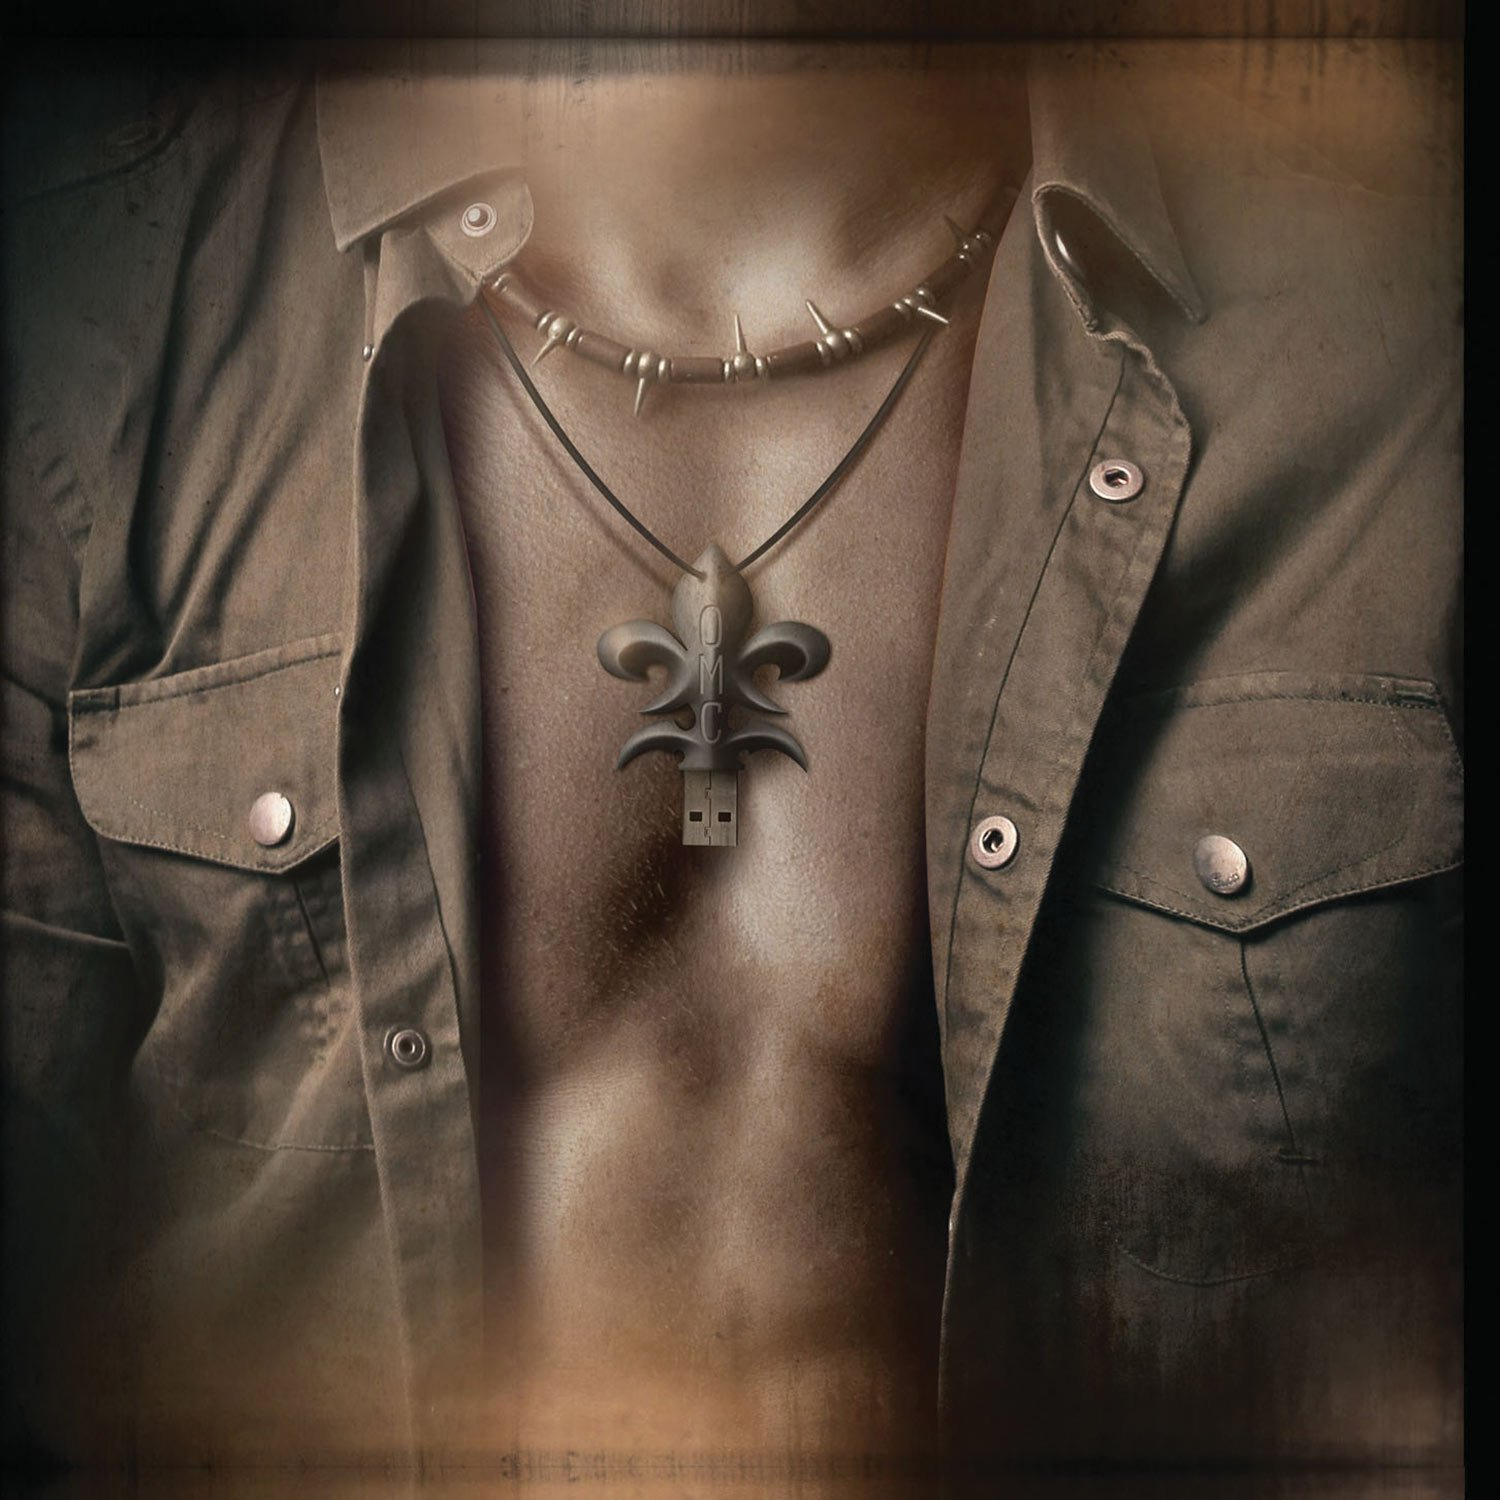 Operation: Mindcrime – The Key Review